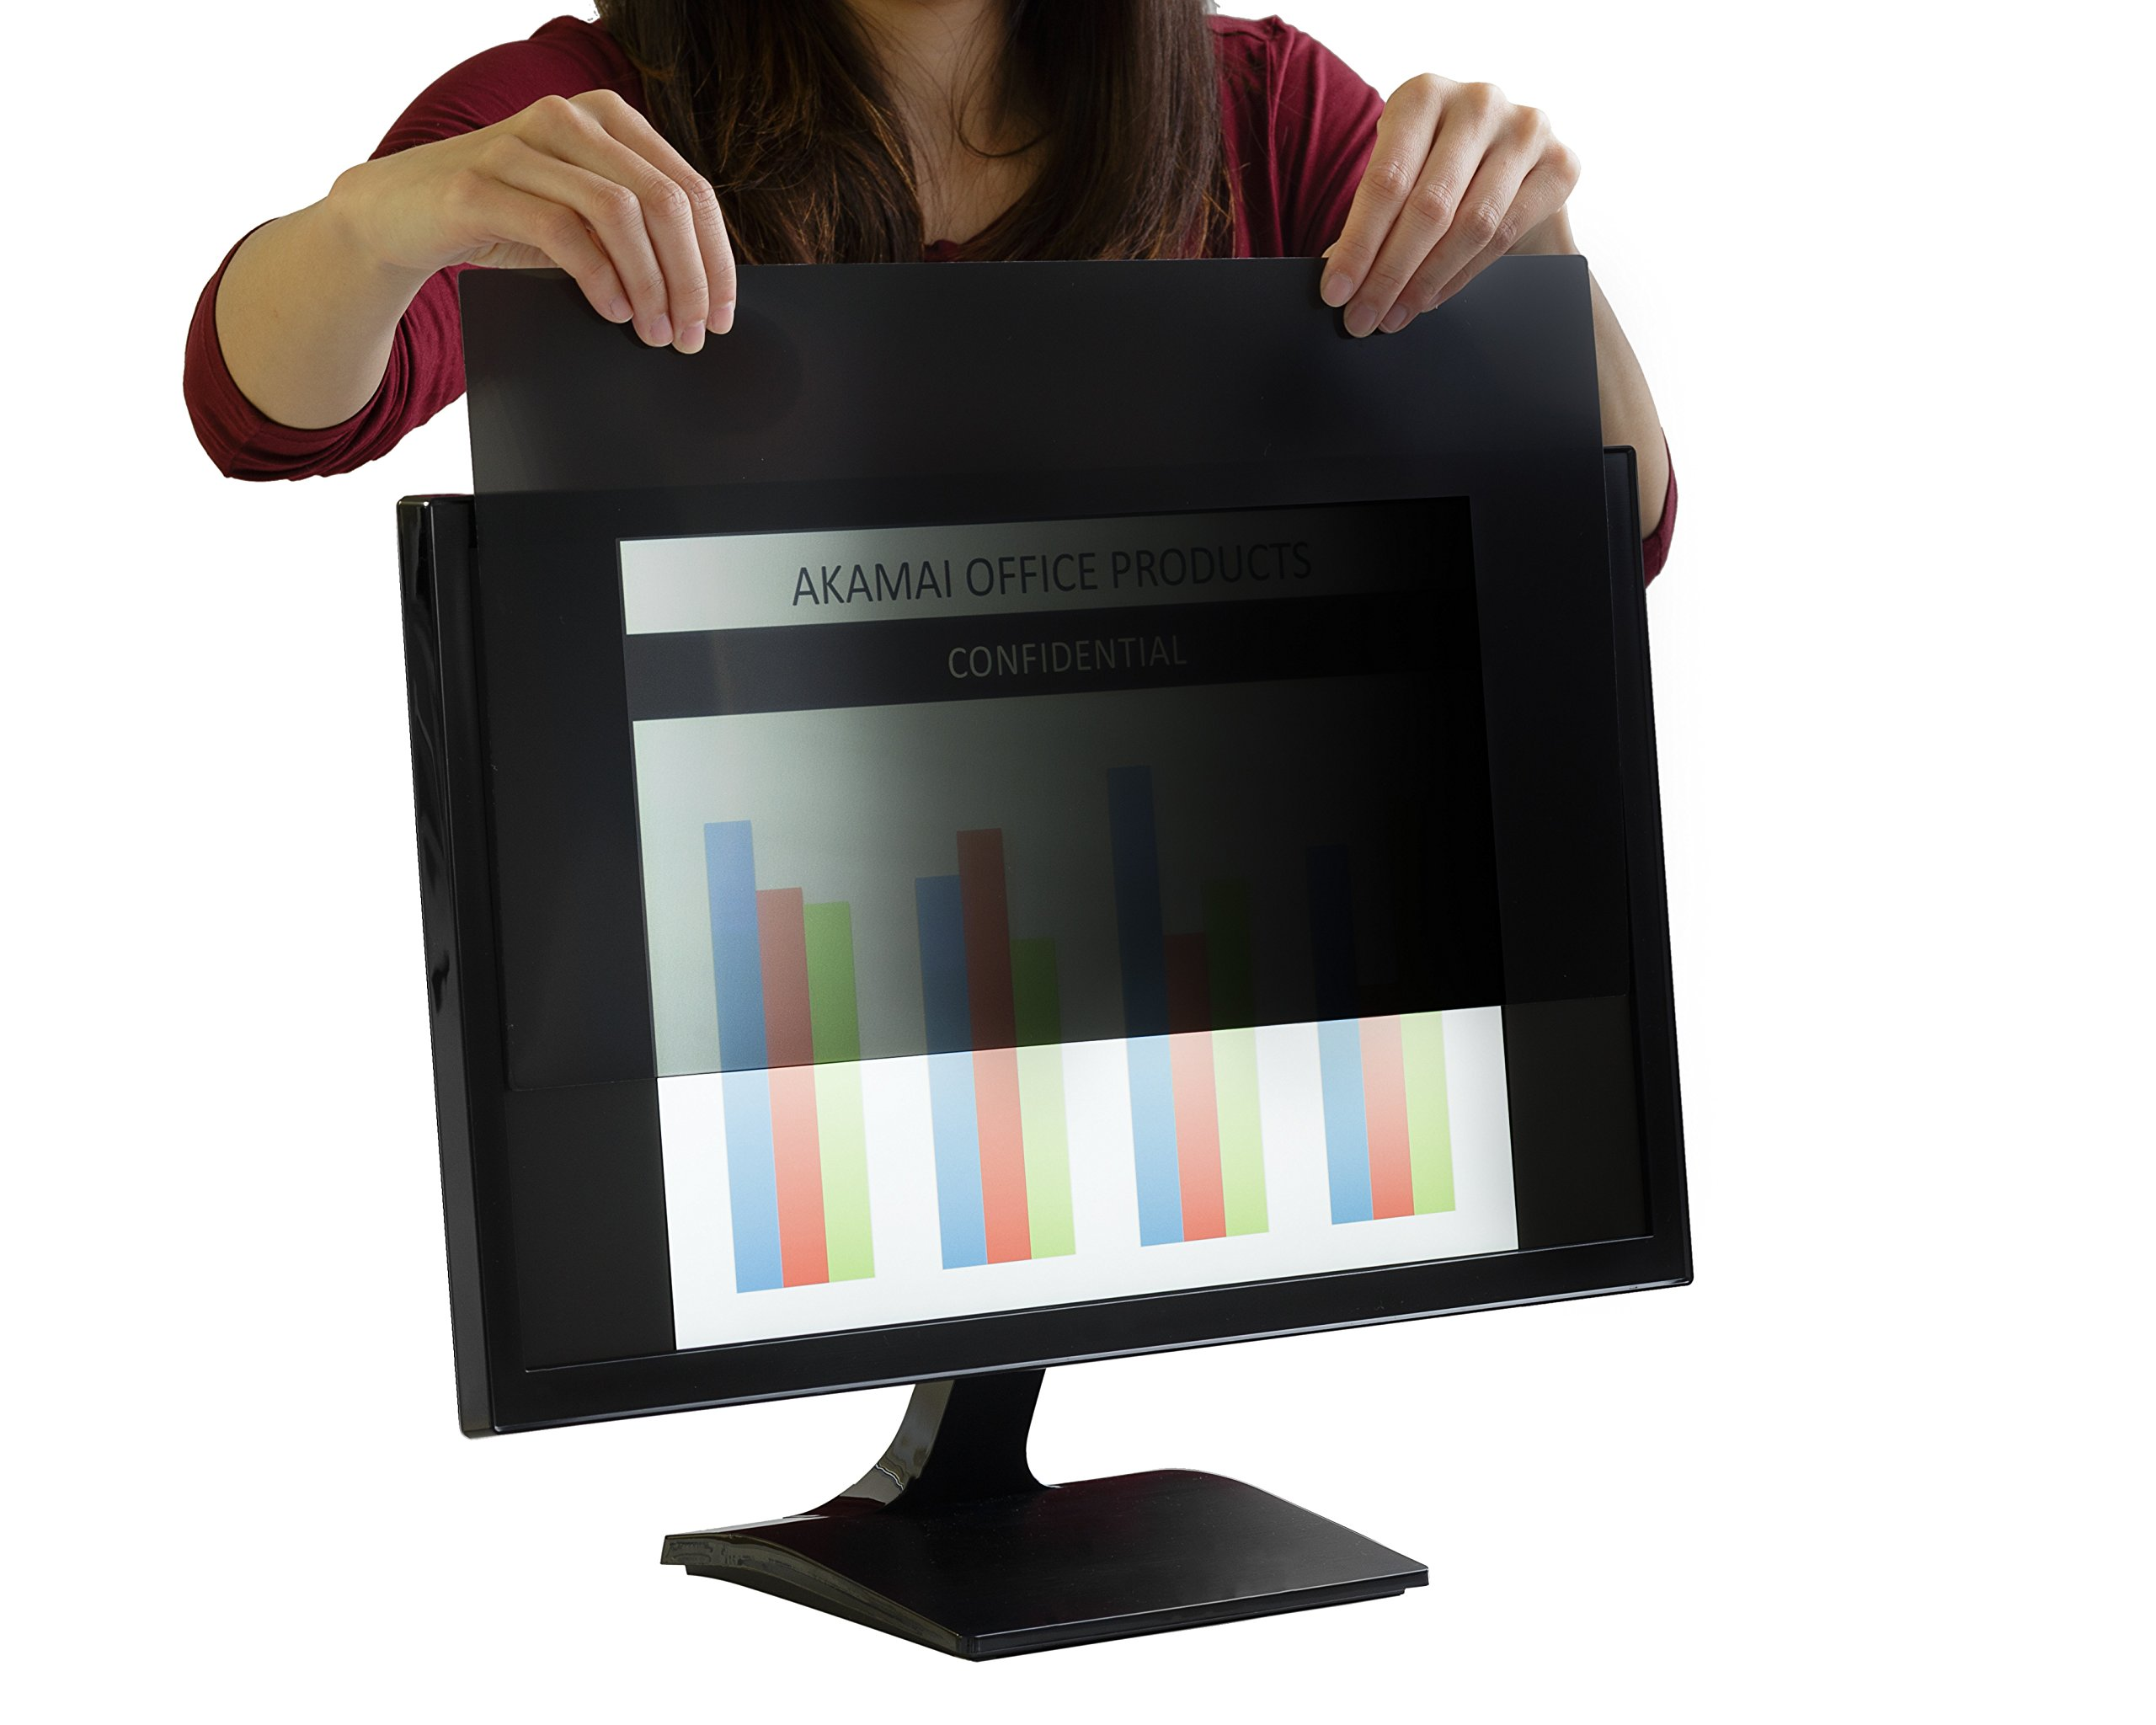 Akamai Office Products 24 Inch (Diagonally Measured) Privacy Screen Filter 16:9 Aspect Ratio for Widescreen Computer Monitors-Anti Glare- PLEASE MEASURE CAREFULLY